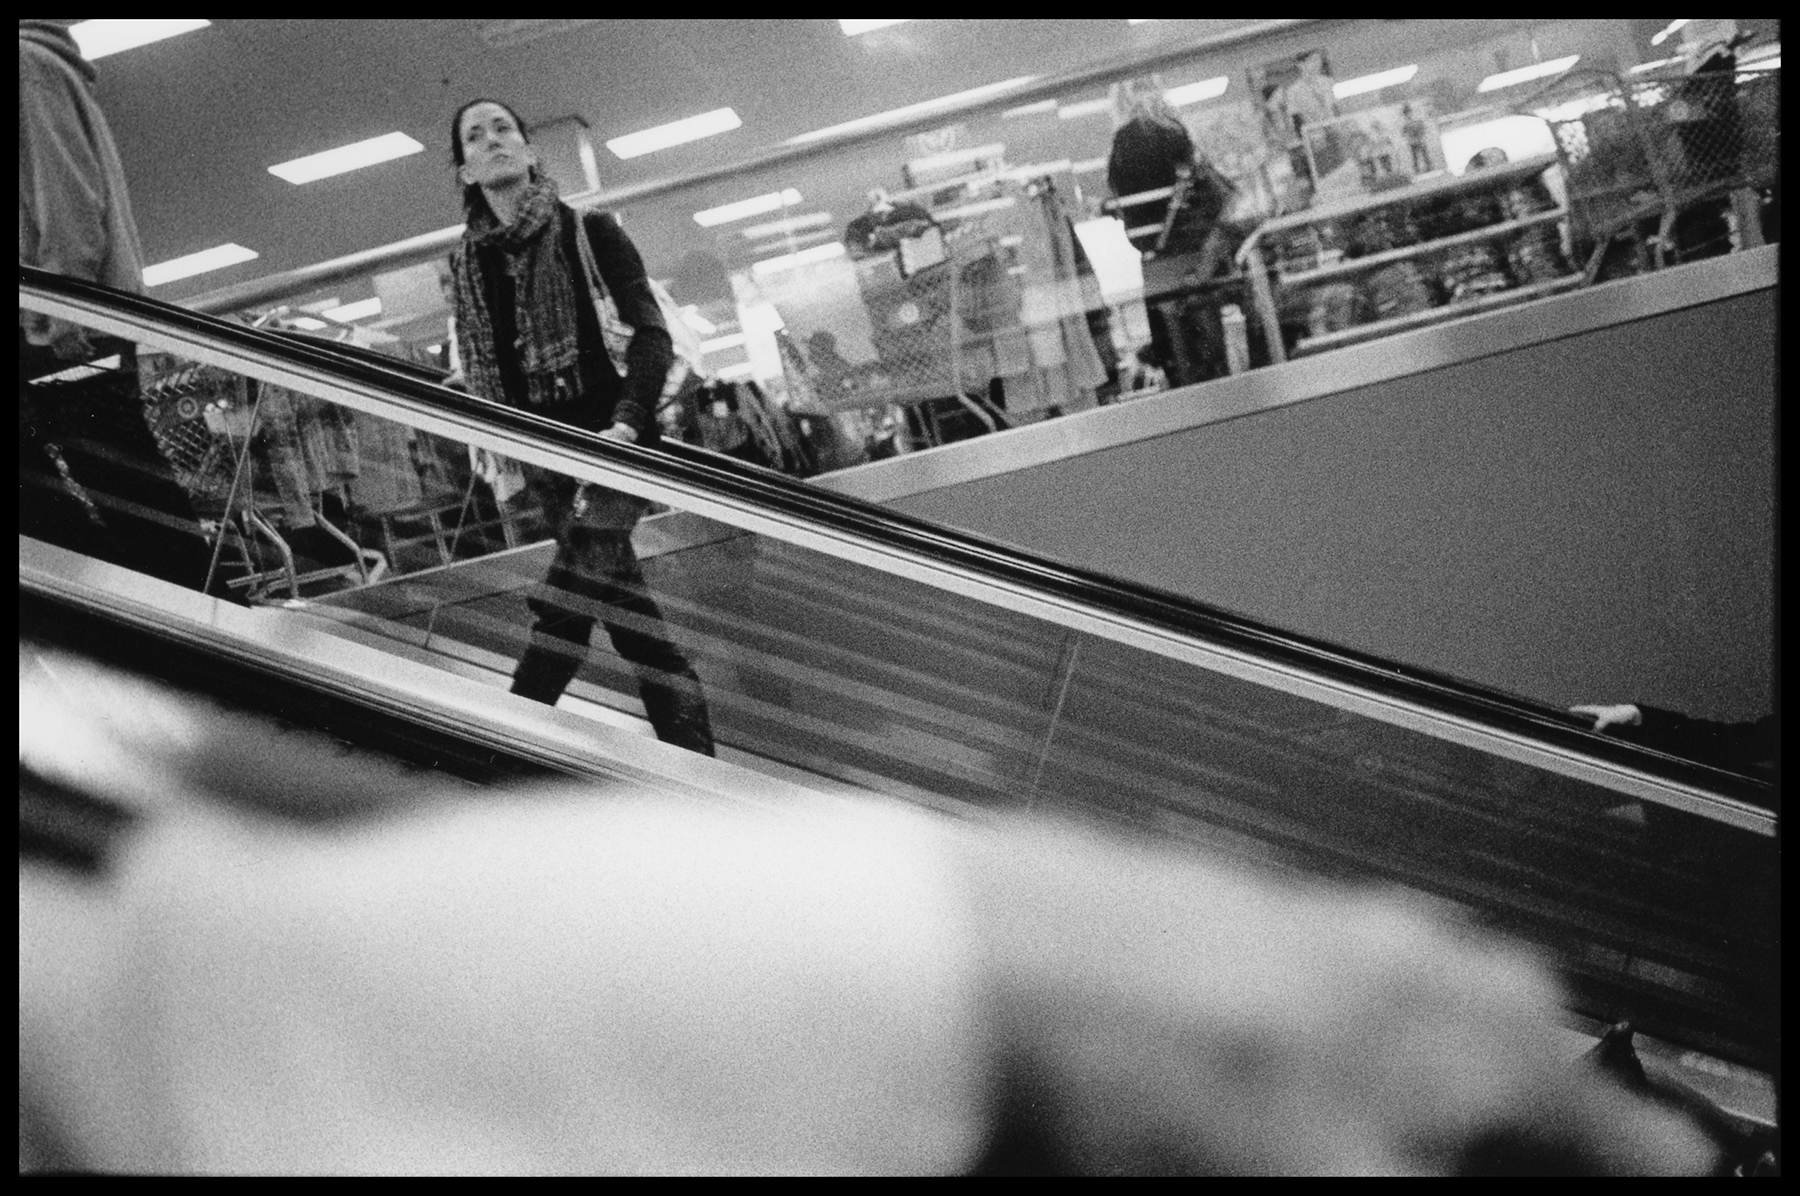 Liza_Botkin_Escalators_Contemplative_4.jpg